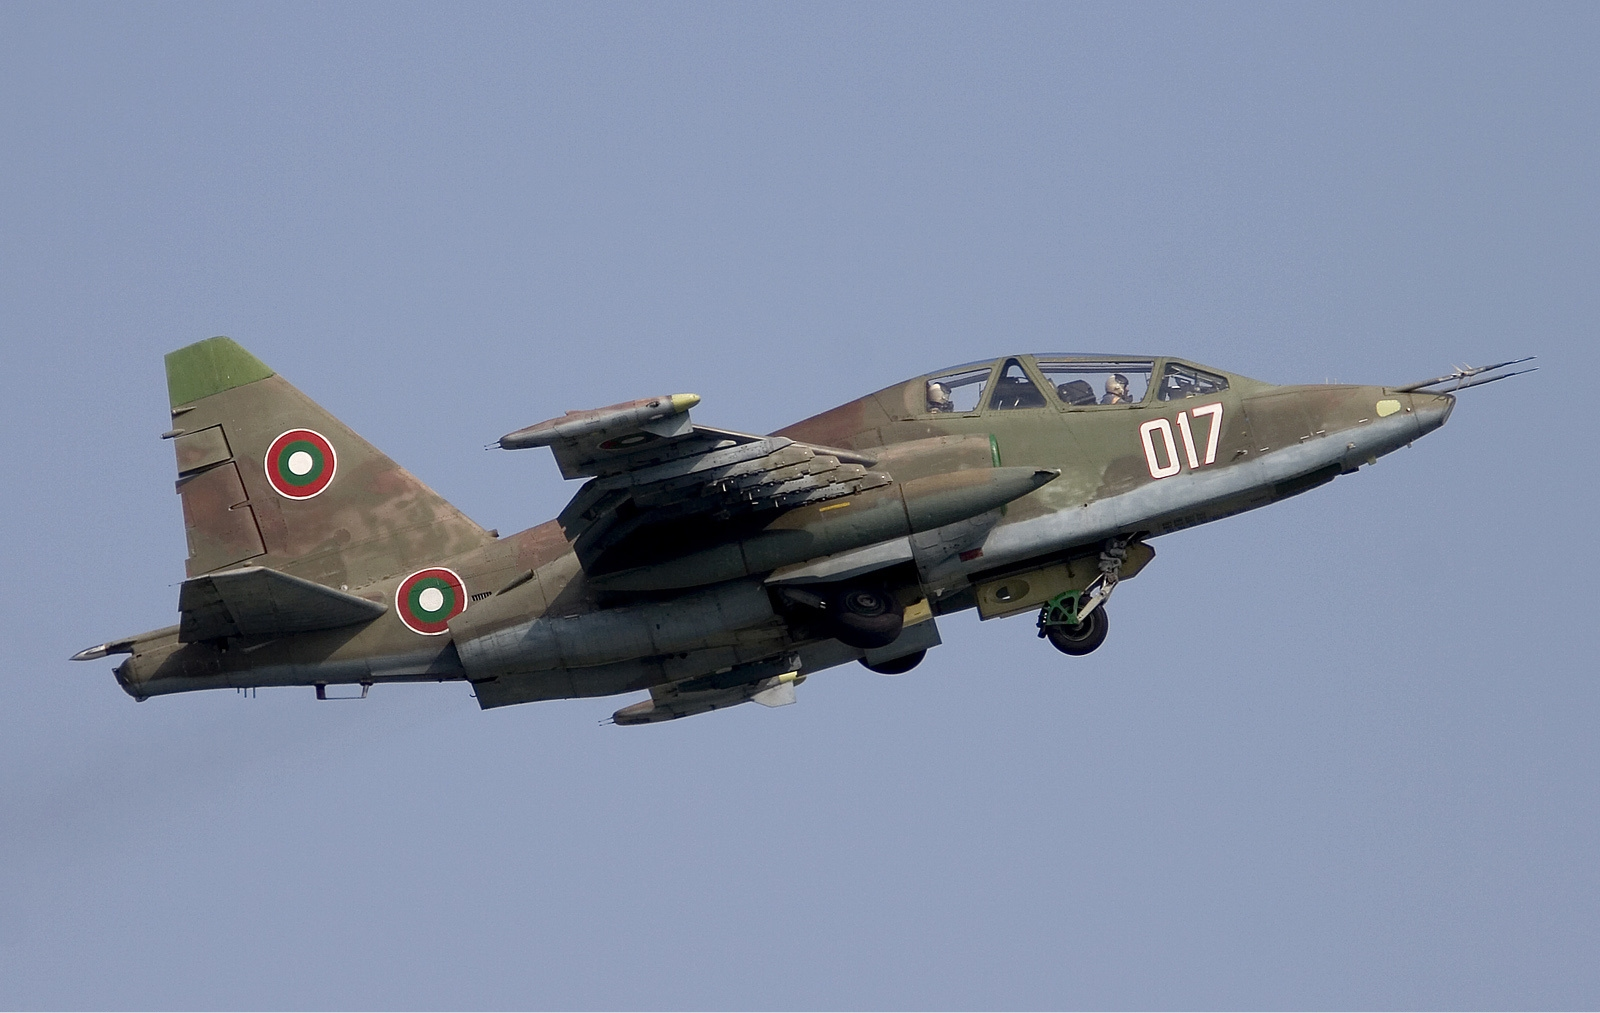 Bulgarian Air Force Sukhoi Su 25UBK Lofting